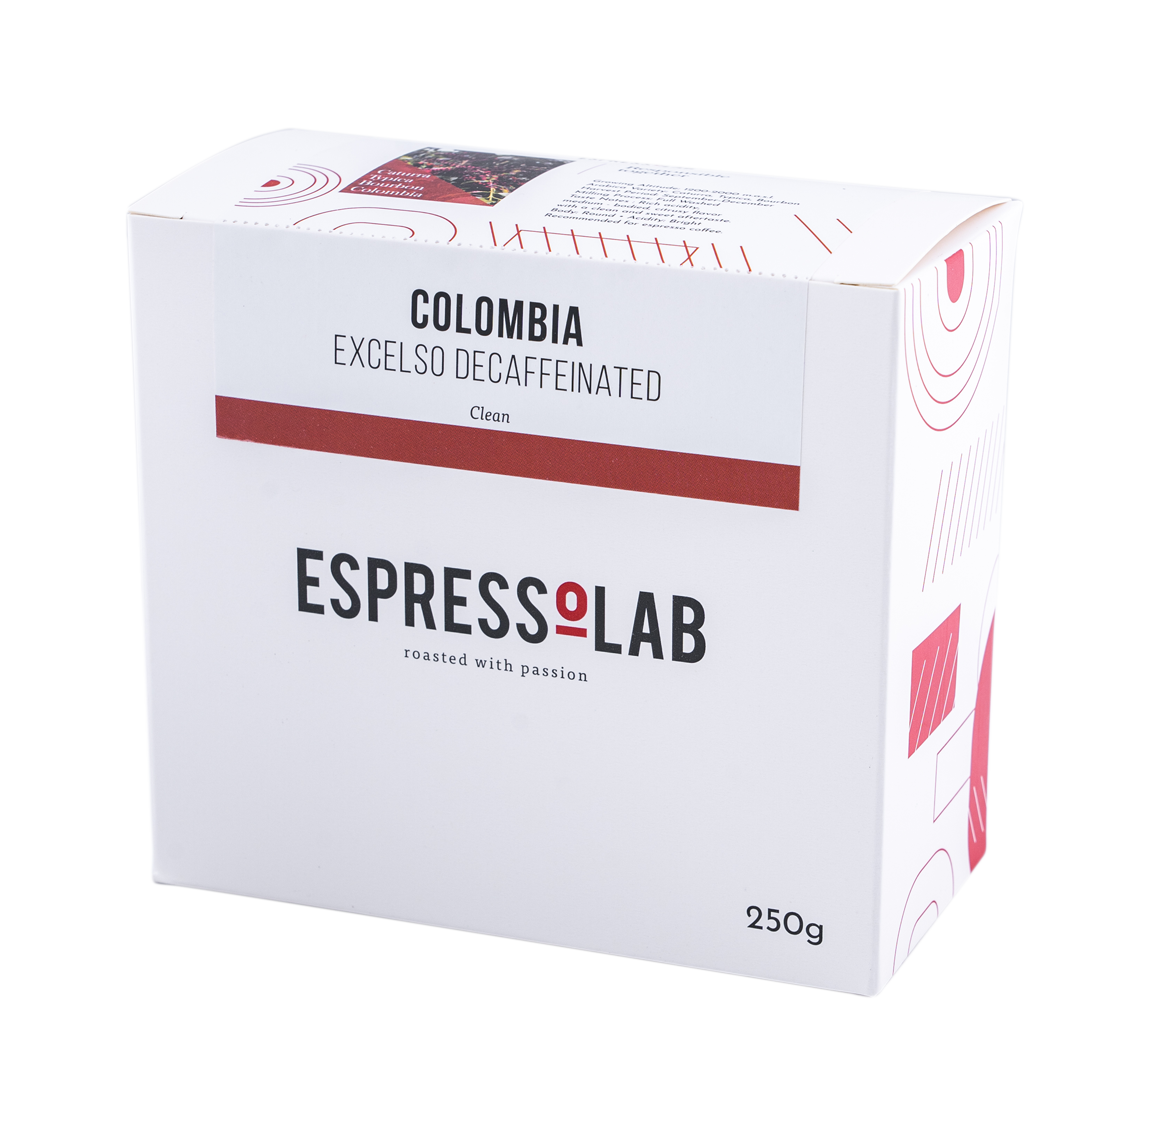 Colombia Excelso Decaffeinated 250g